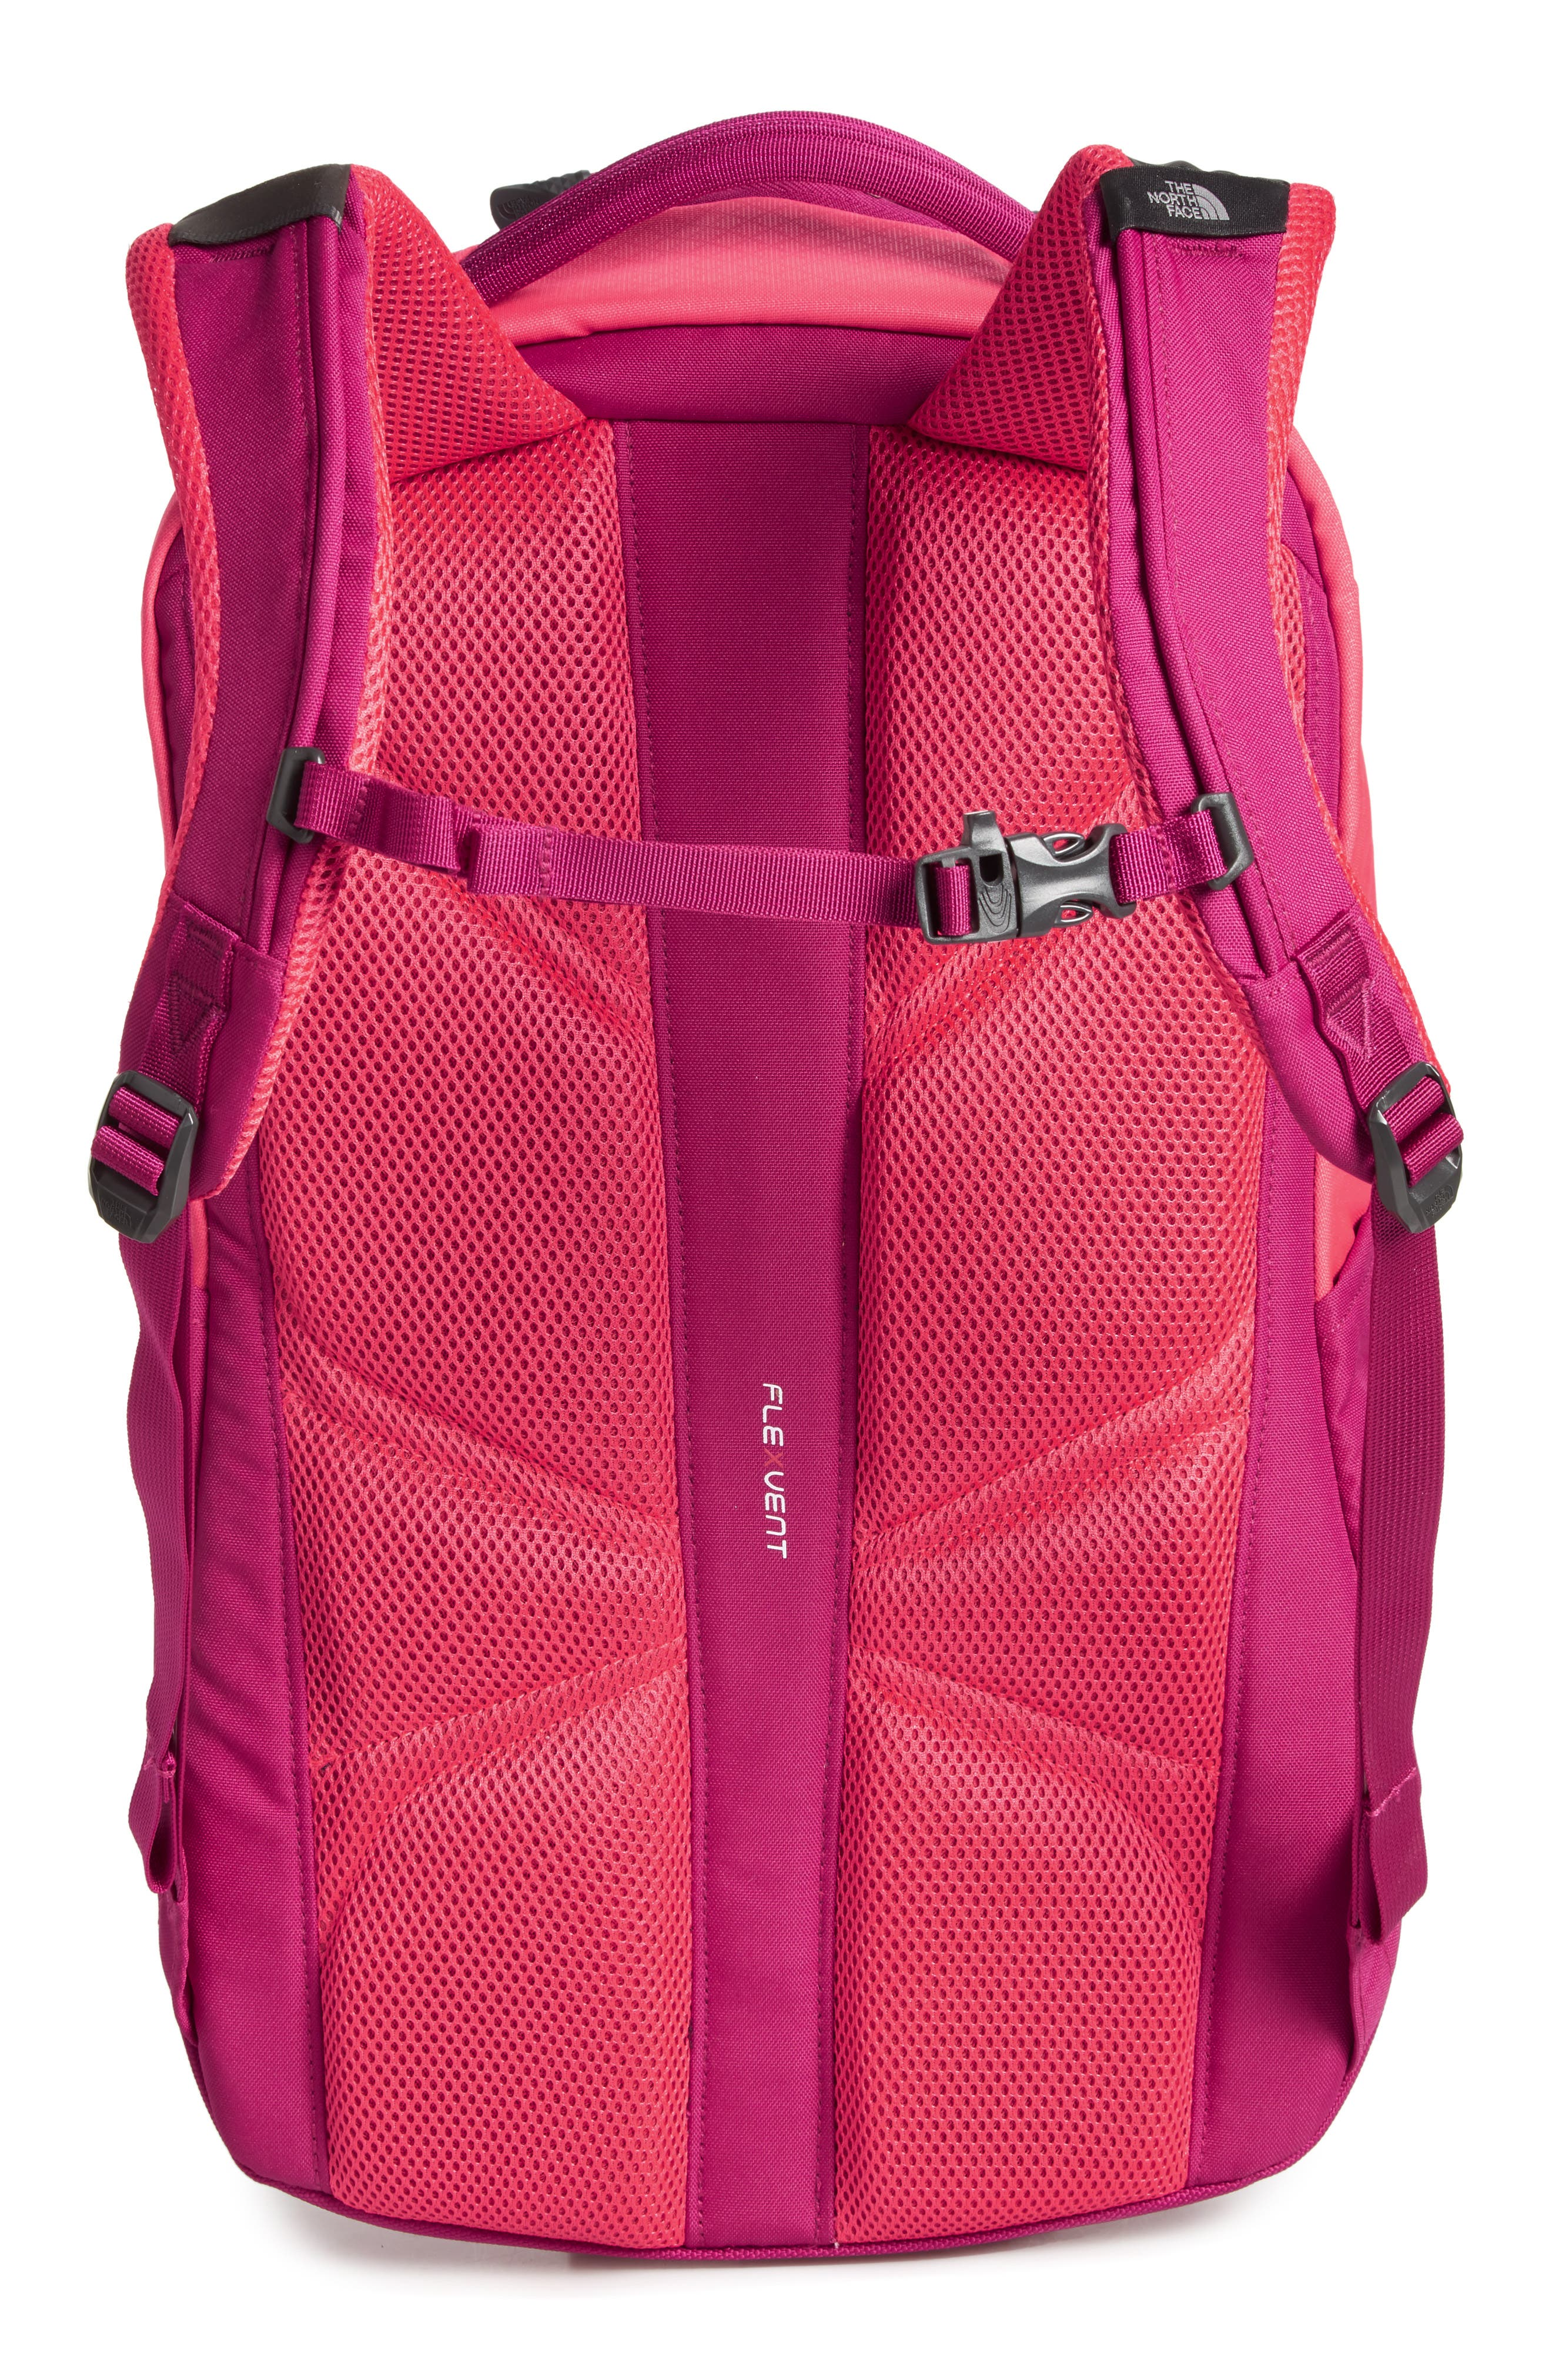 Vault Backpack,                             Alternate thumbnail 2, color,                             ATOMIC PINK/ DRAMATIC PLUM